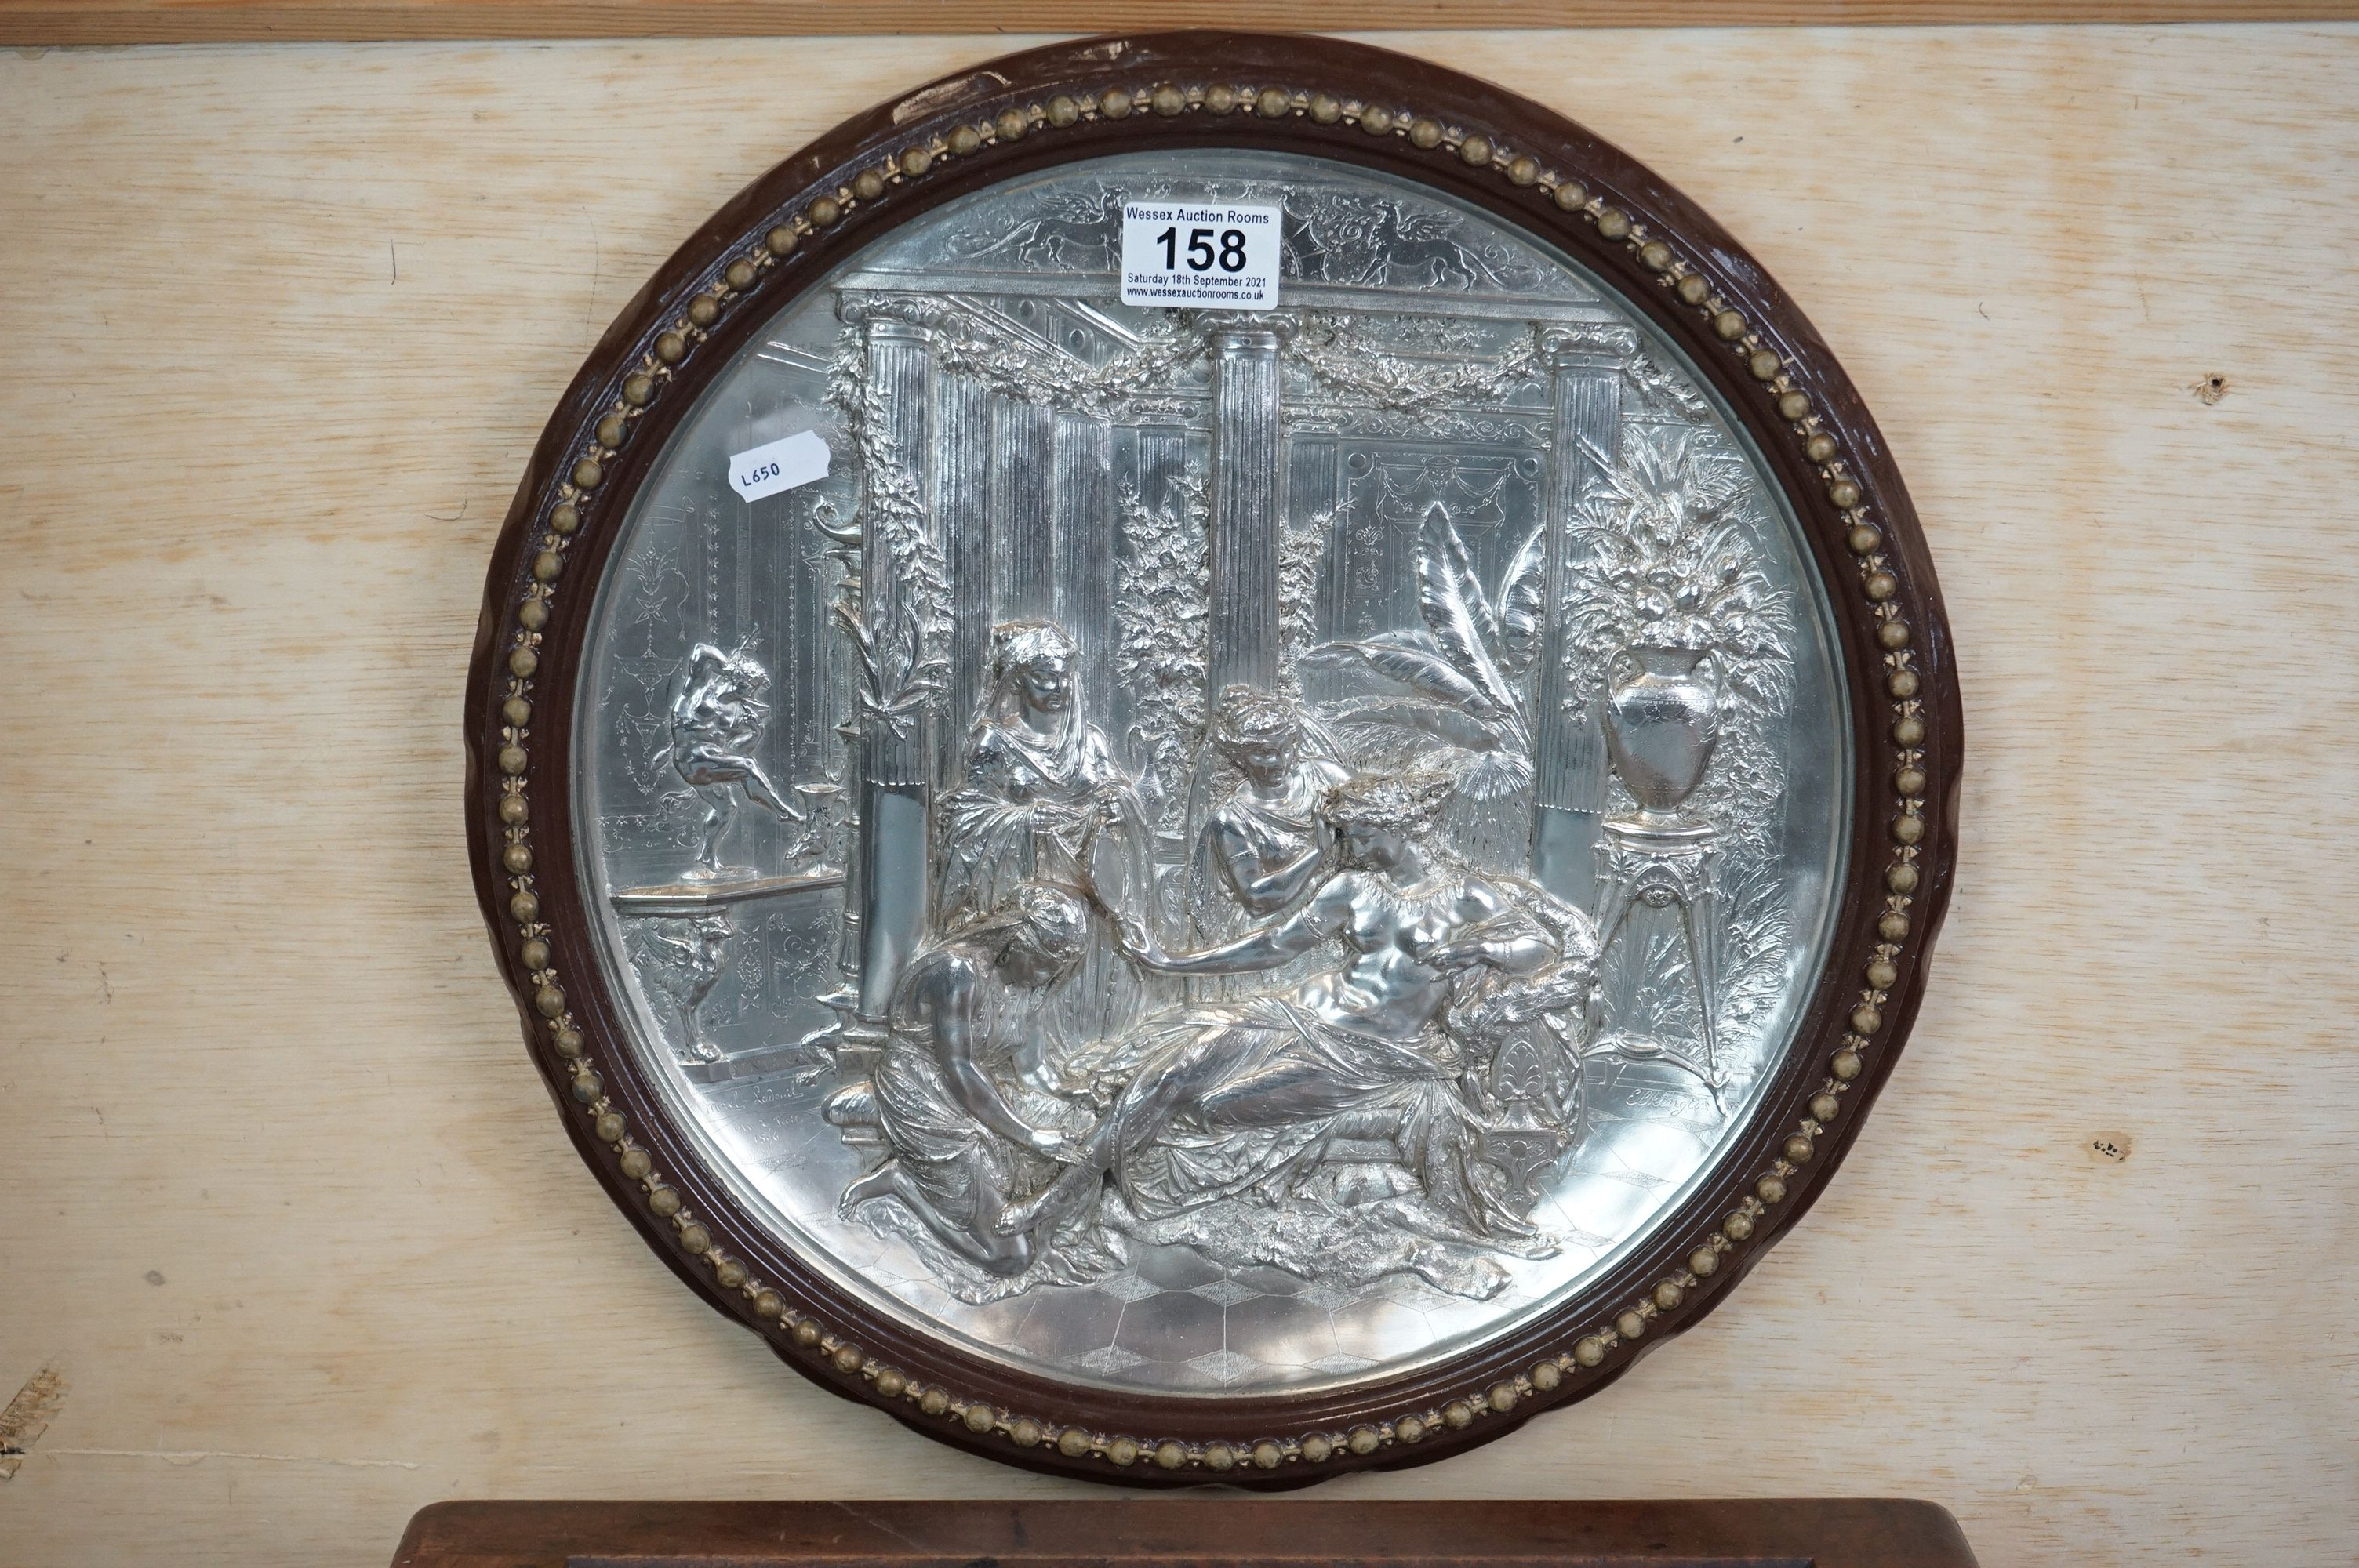 Elkington Silver Plated Circular Wall Plaque with embossed classical scene decoration, 32cms